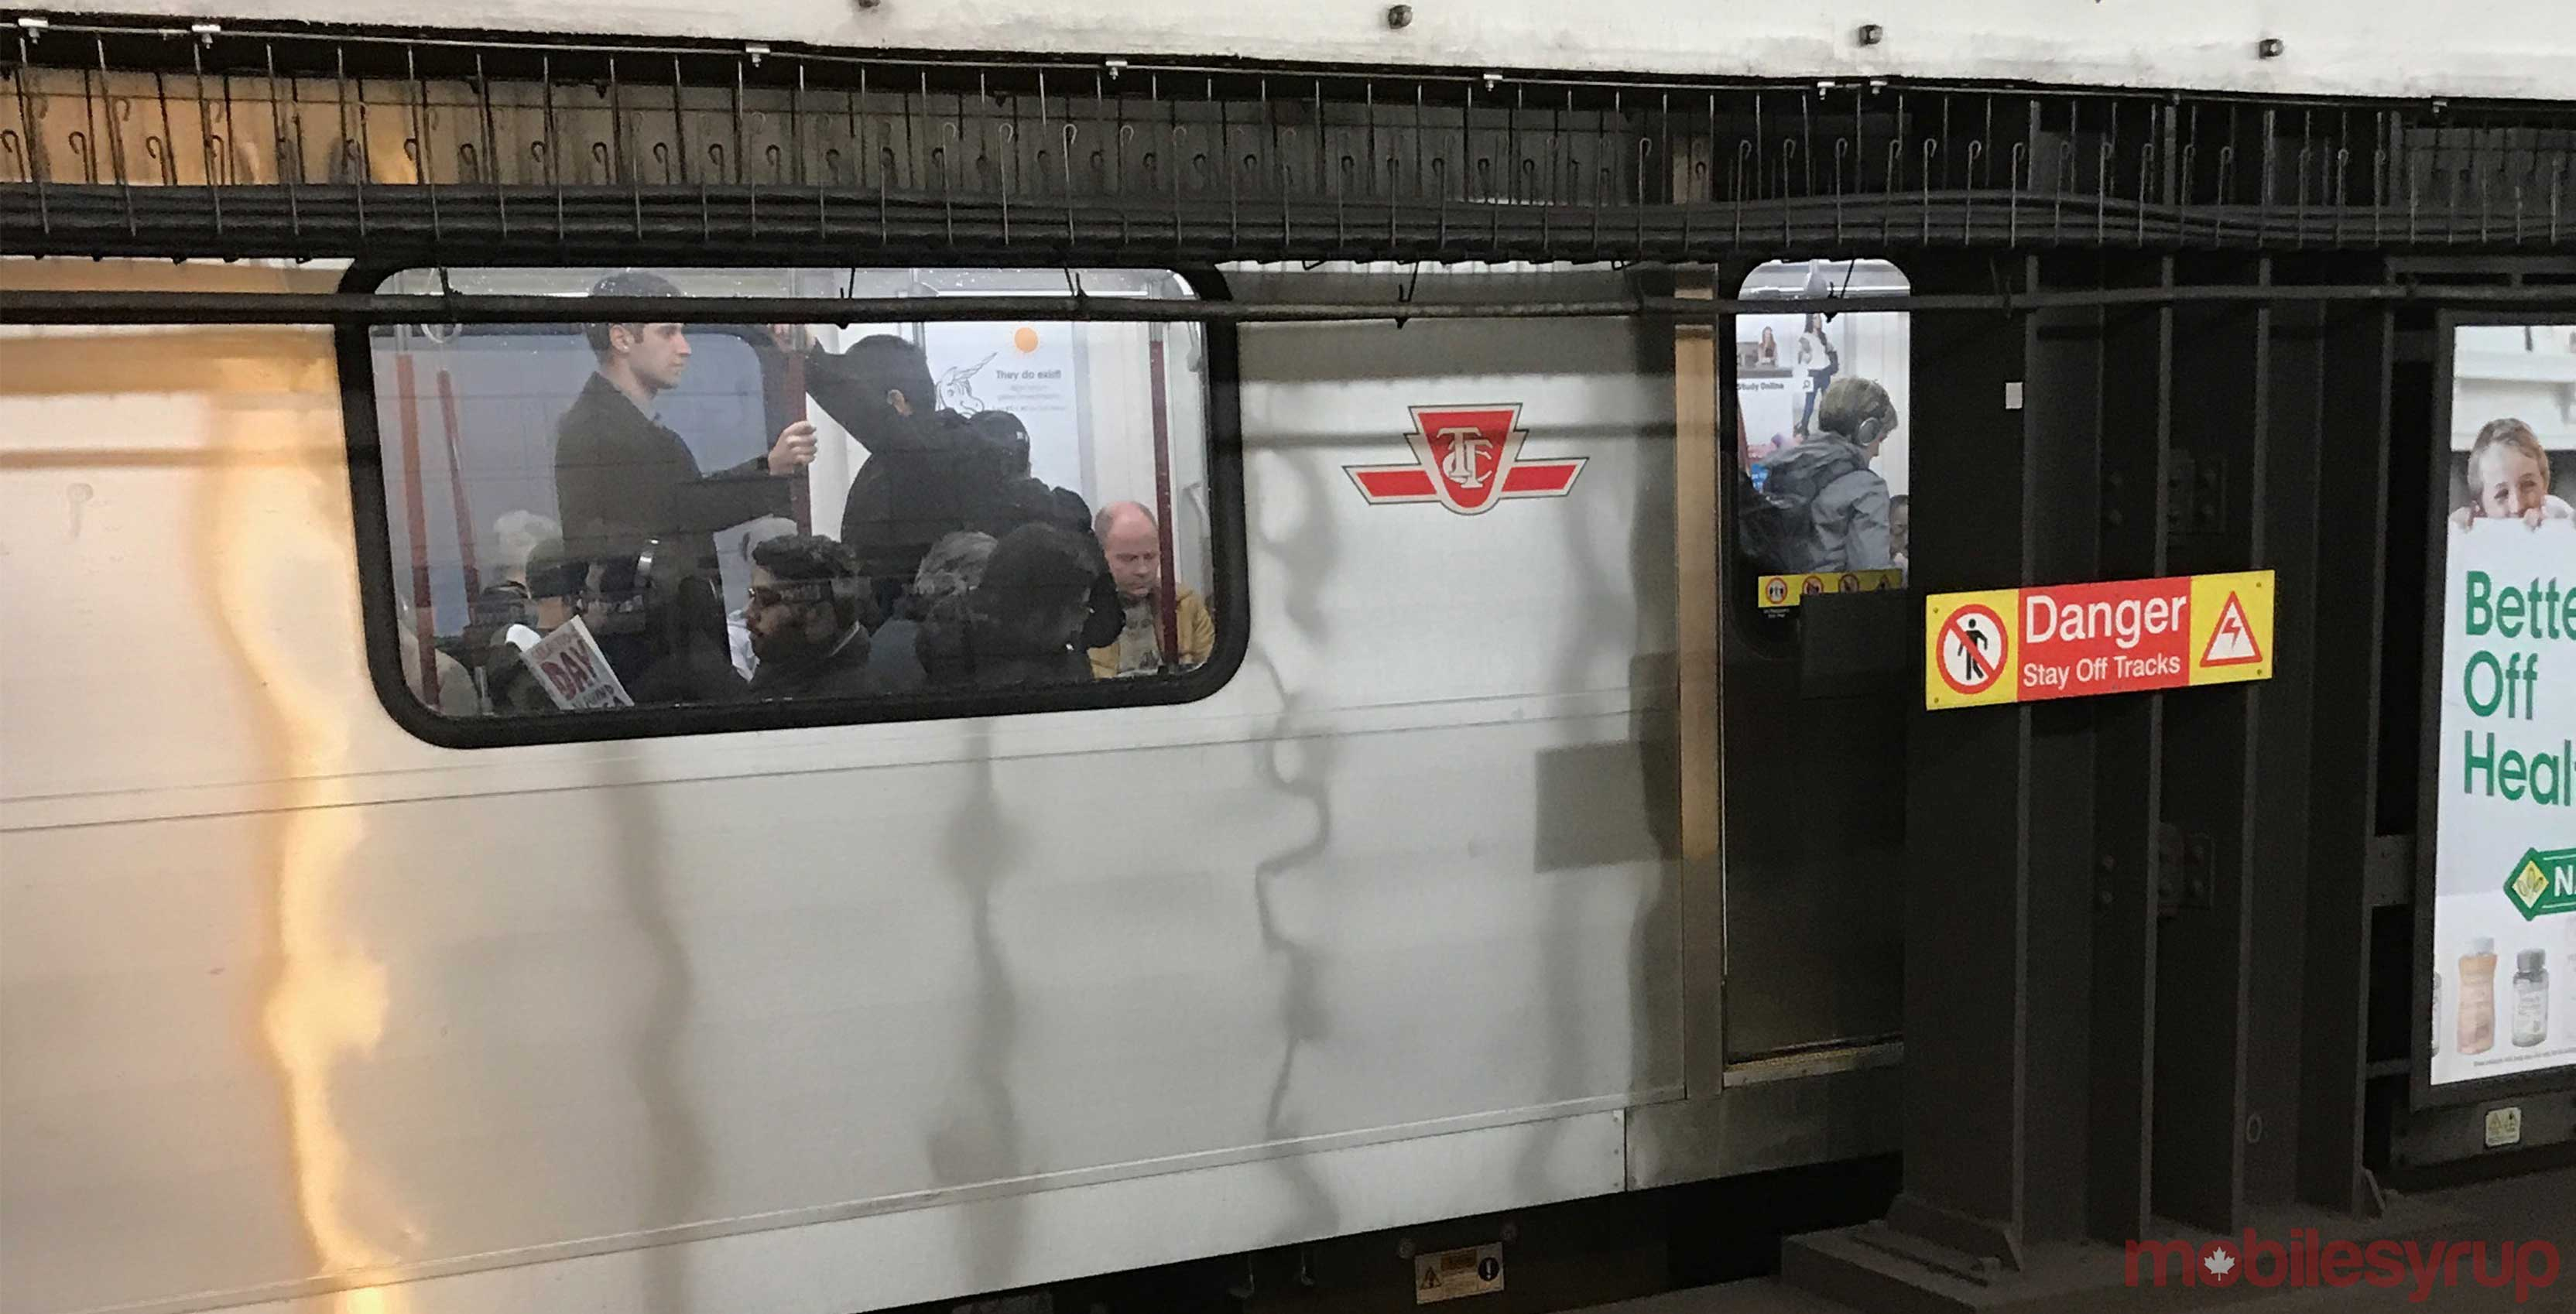 TTC subway car